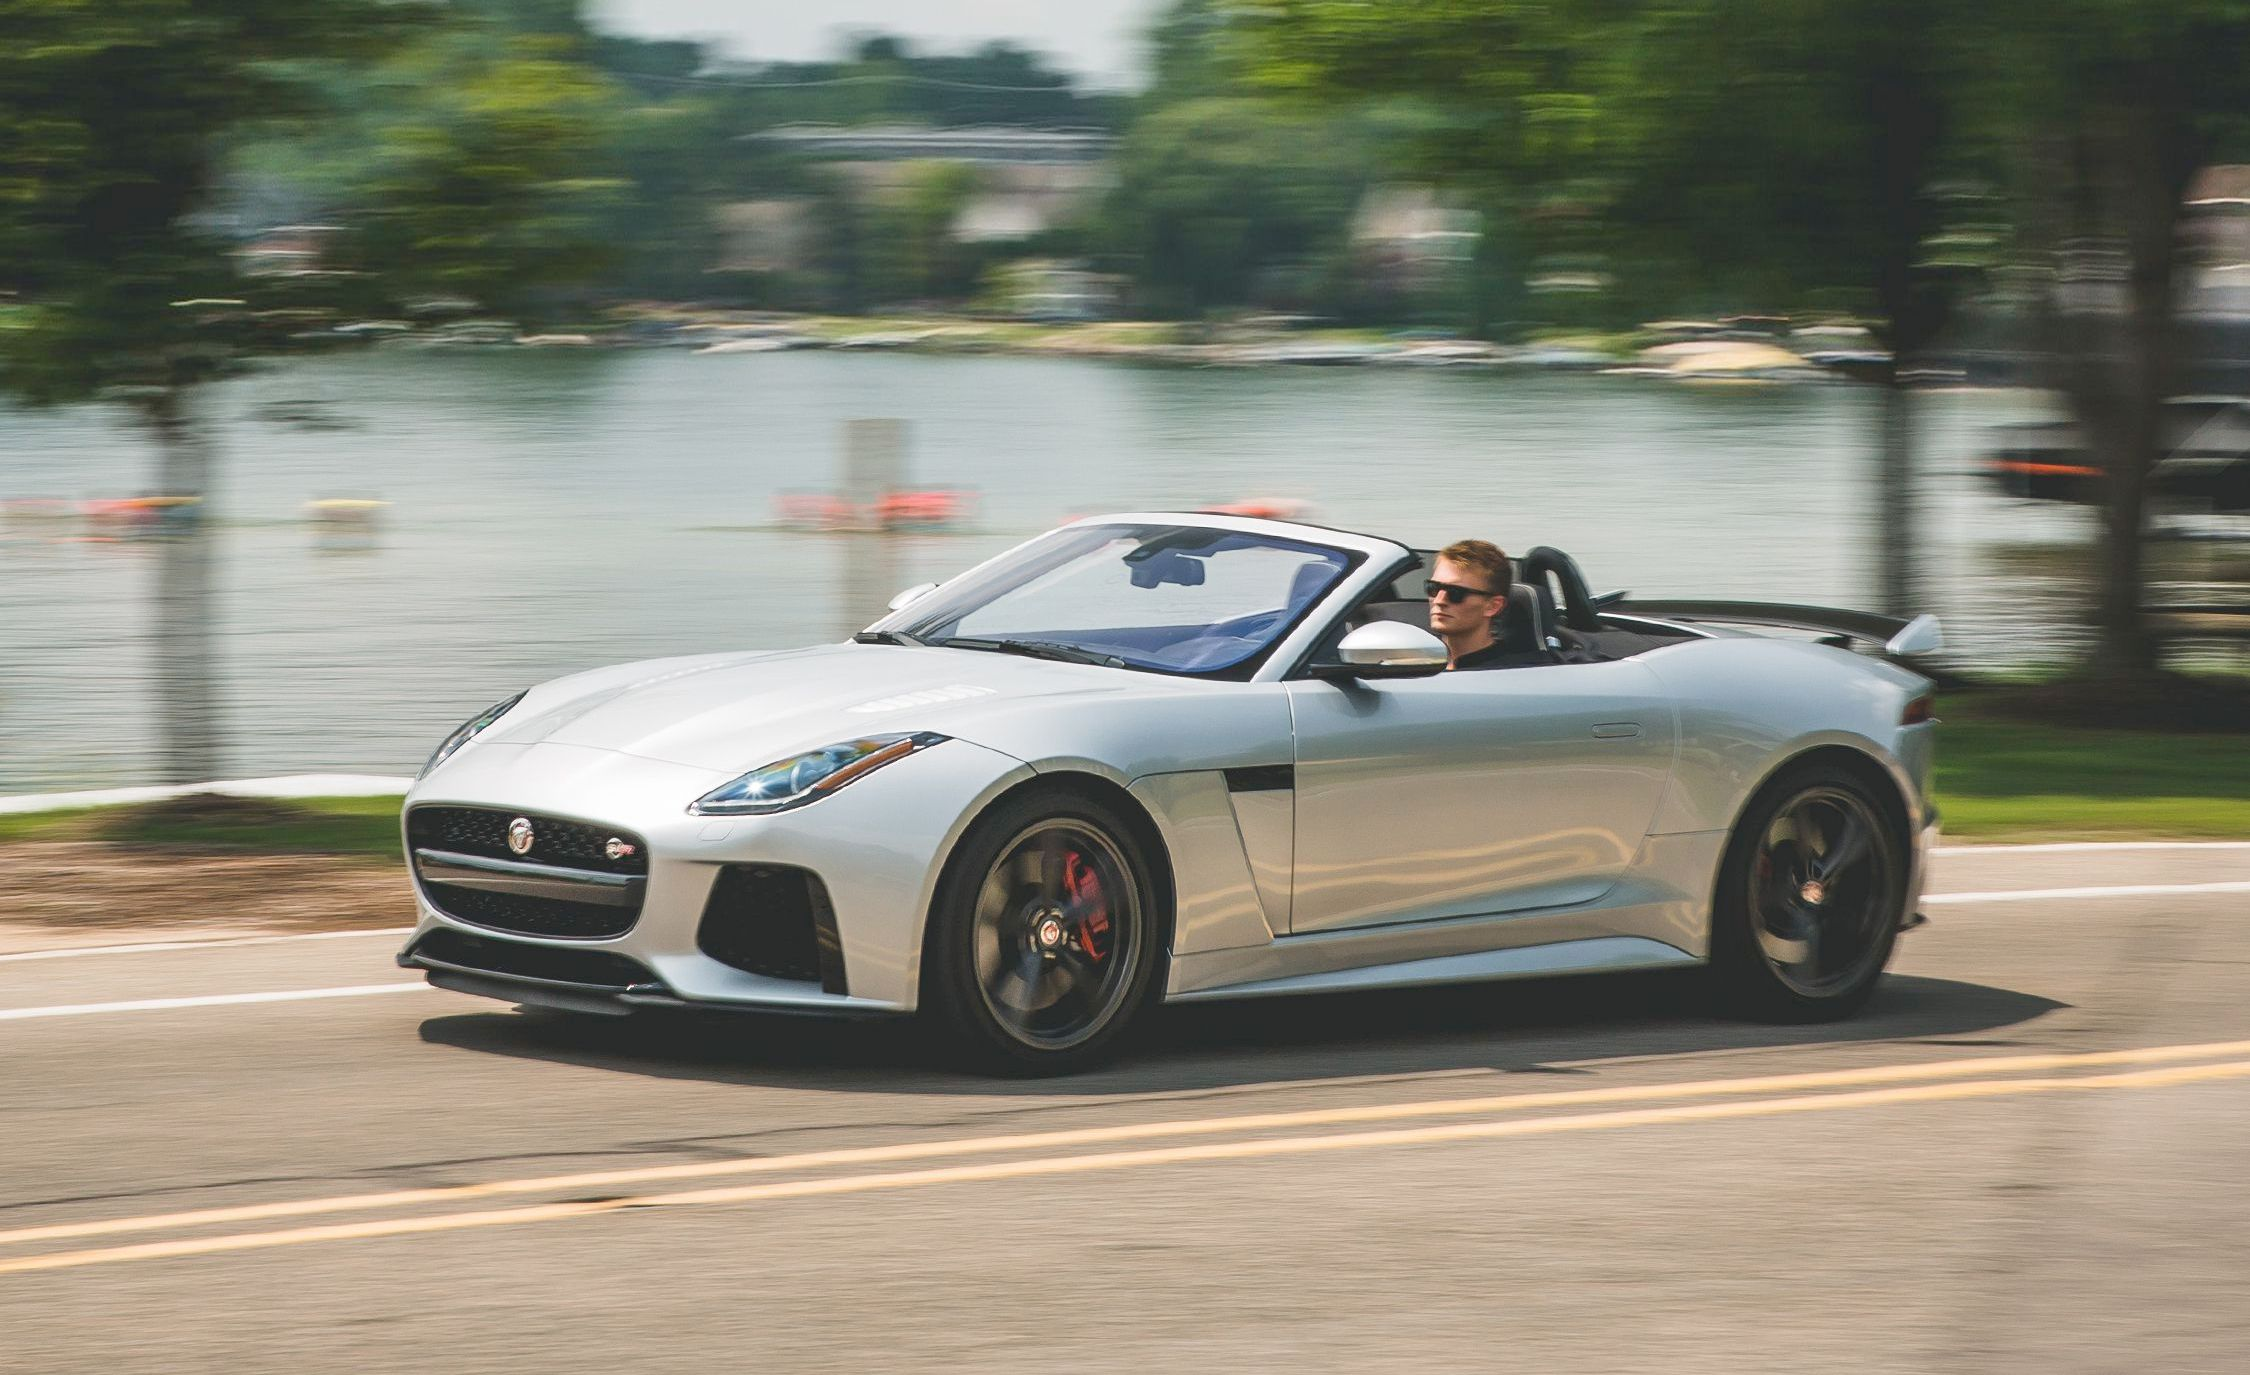 ניס 2019 Jaguar F-type R Reviews | Jaguar F-type R Price, Photos, and KF-04